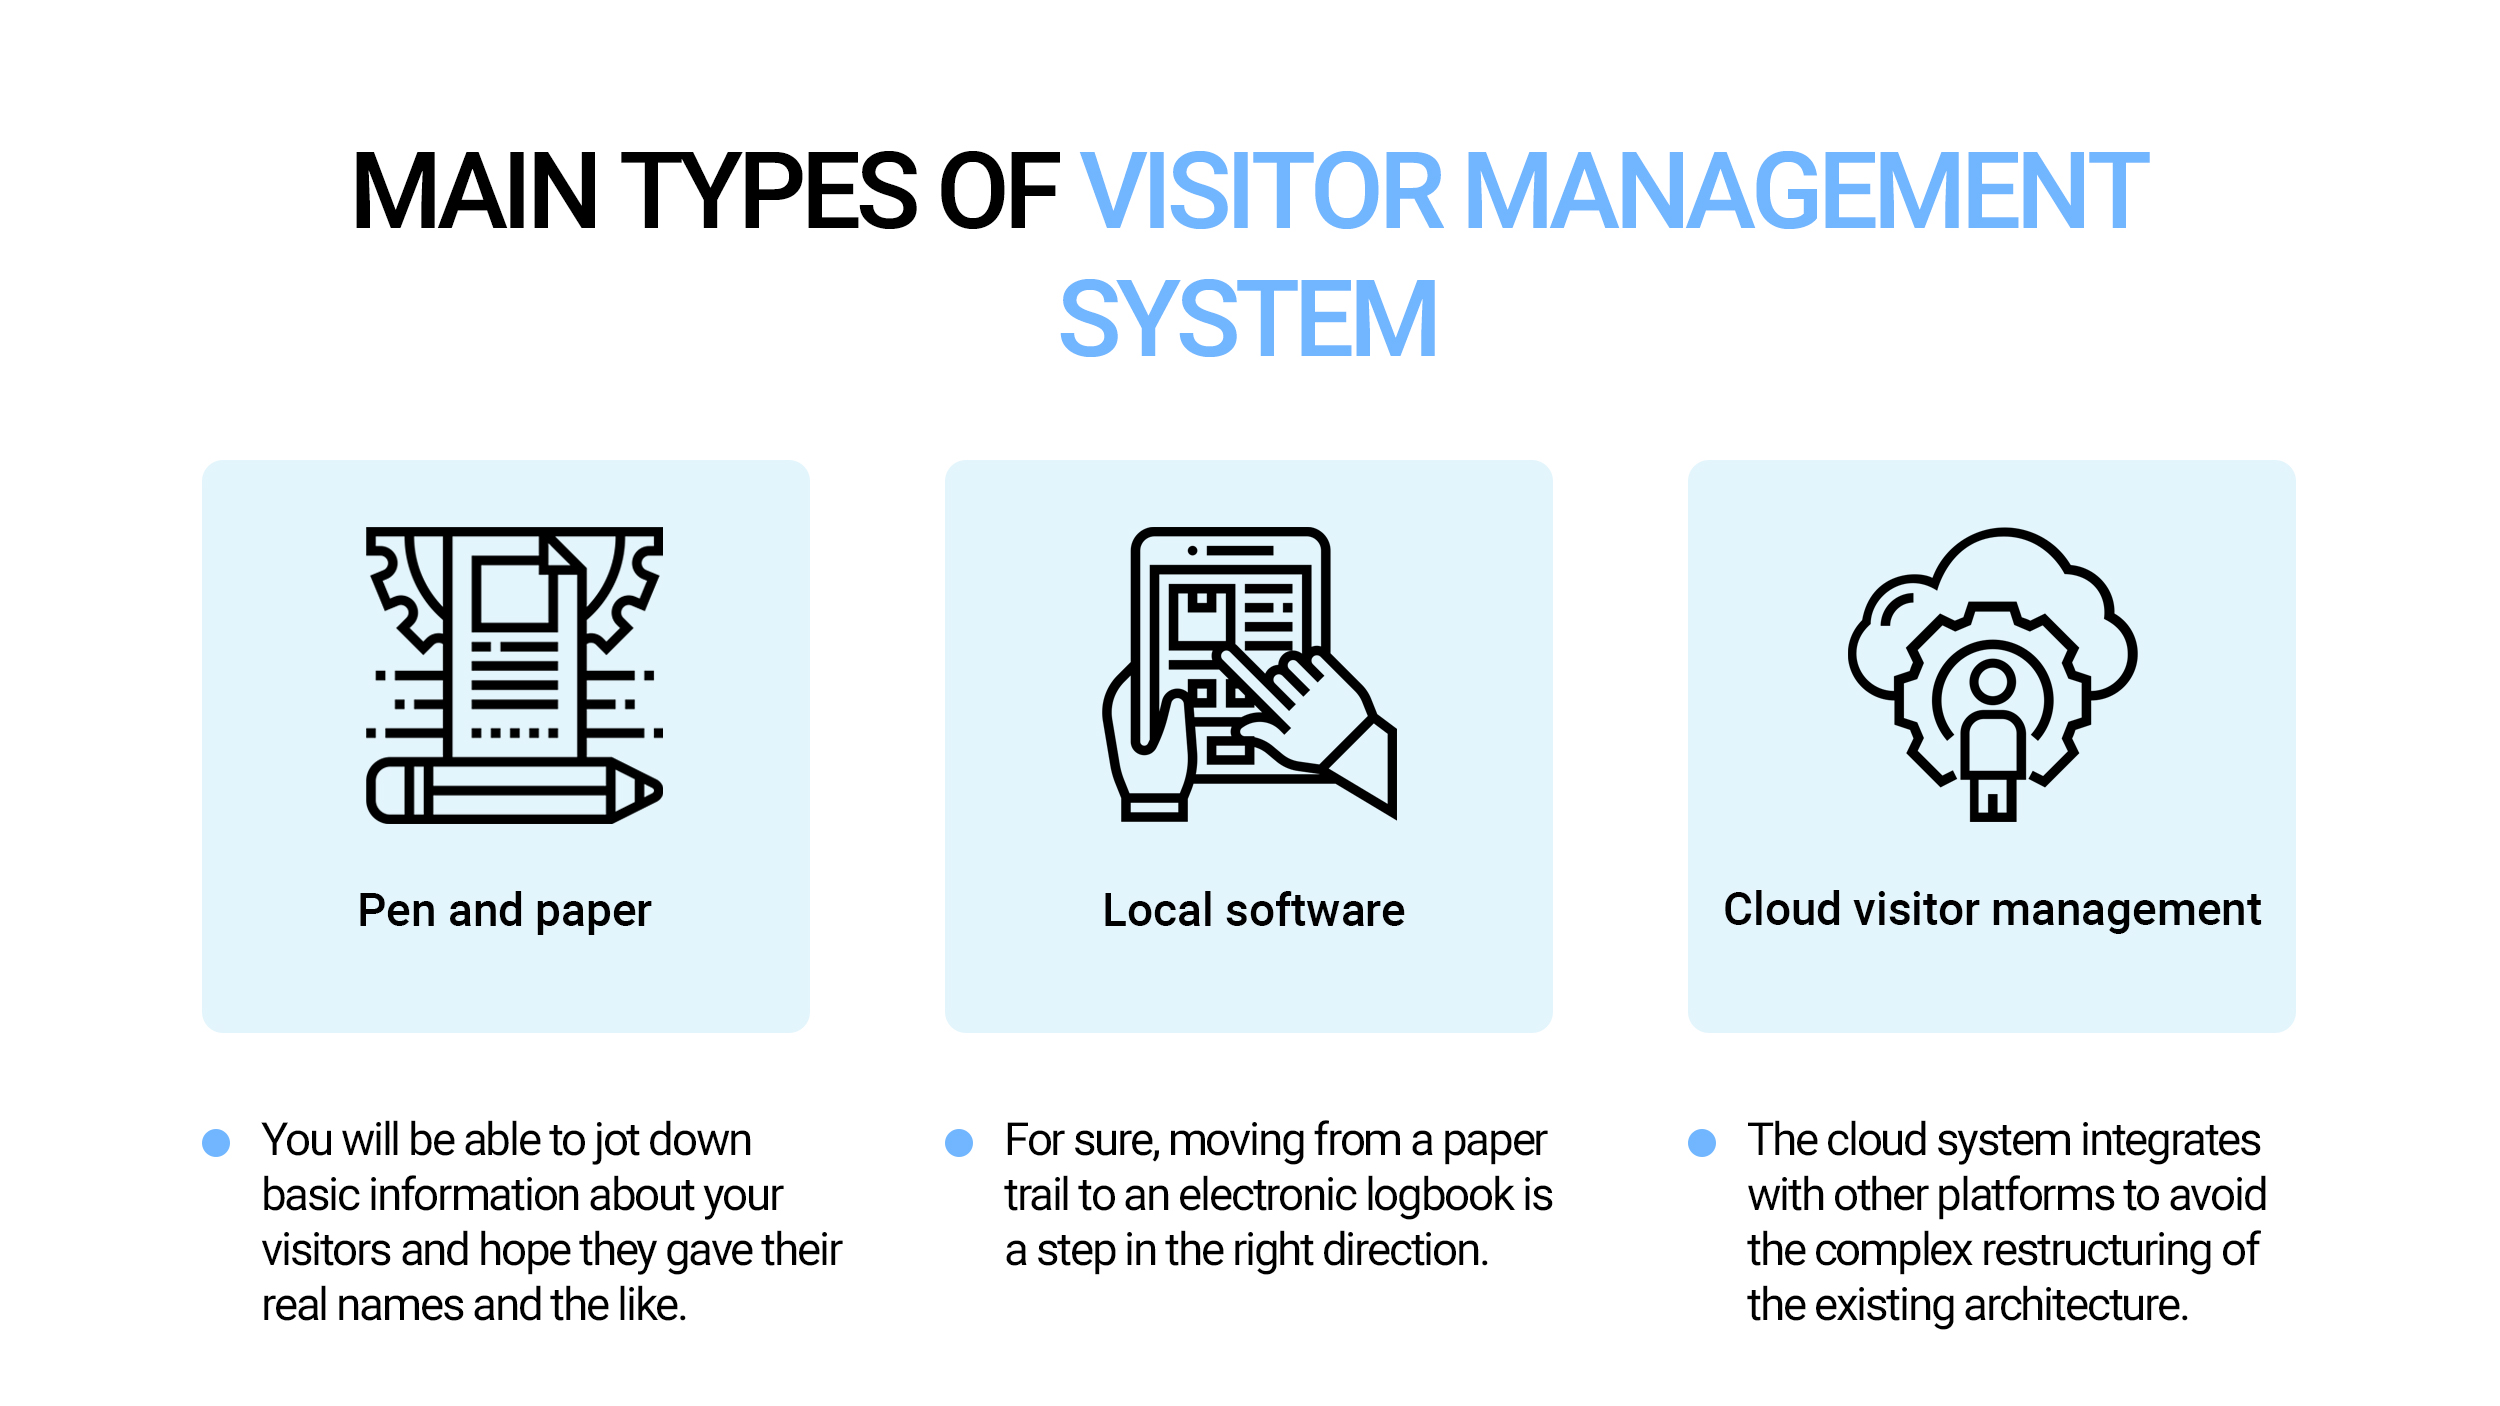 Main Types of Visitor Management System